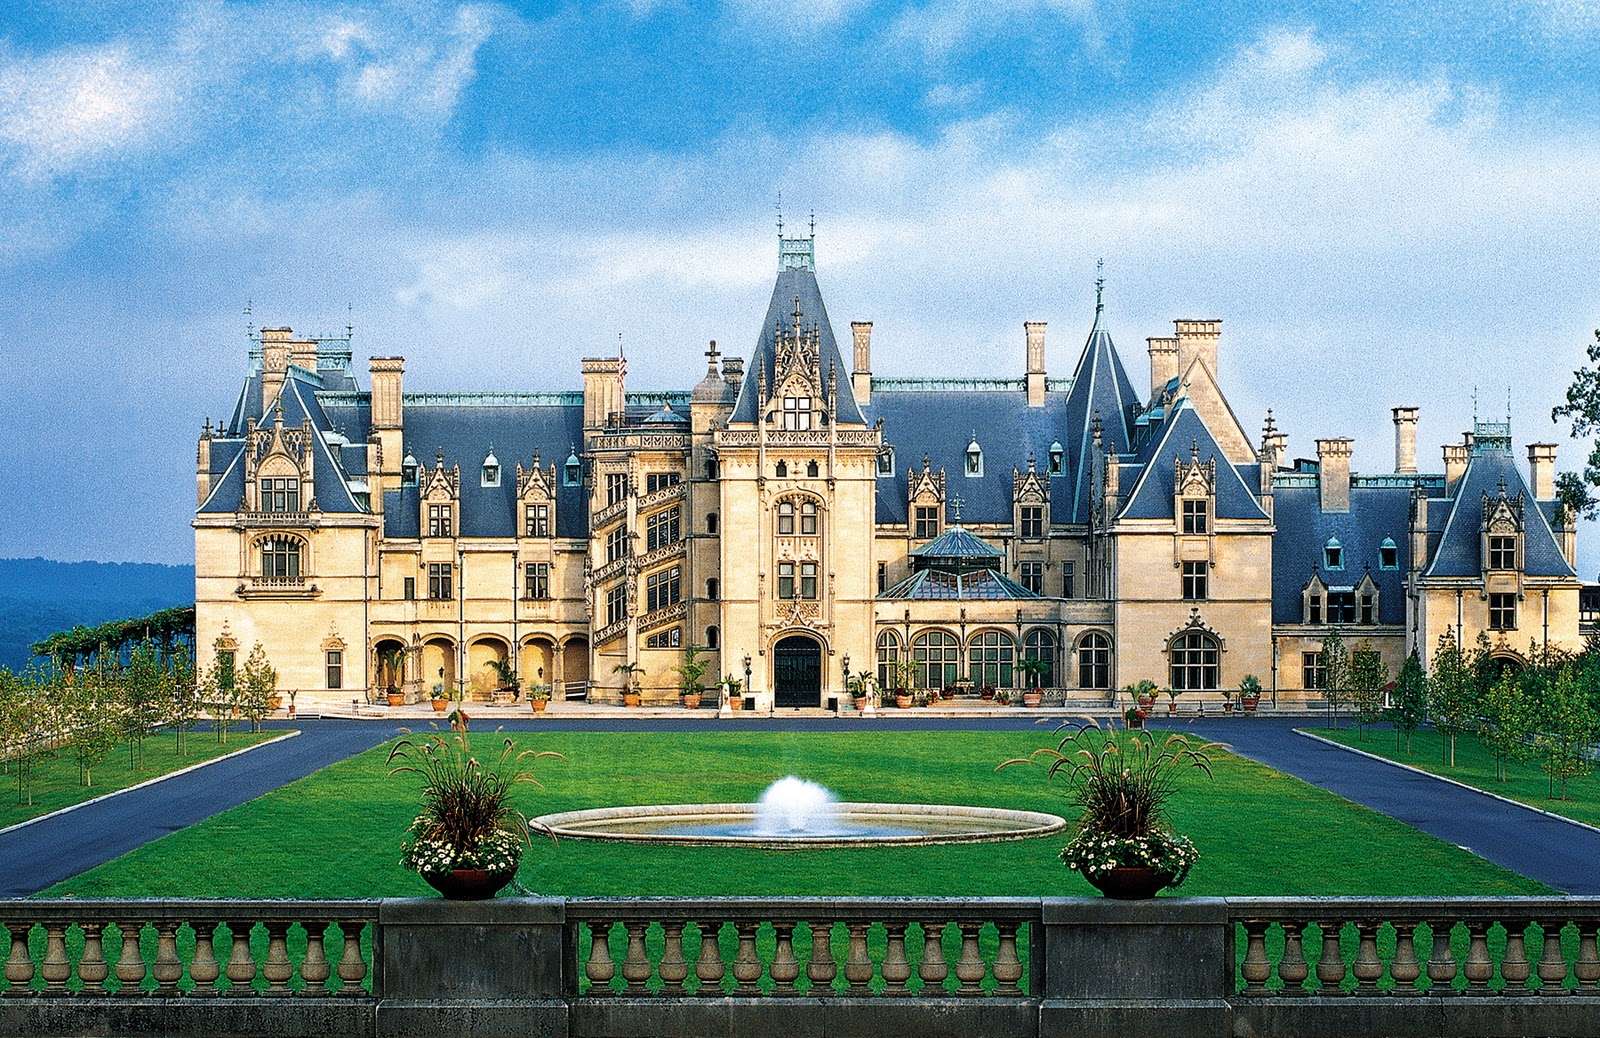 Biltmore estate in asheville, north carolina is truly breathtaking. i